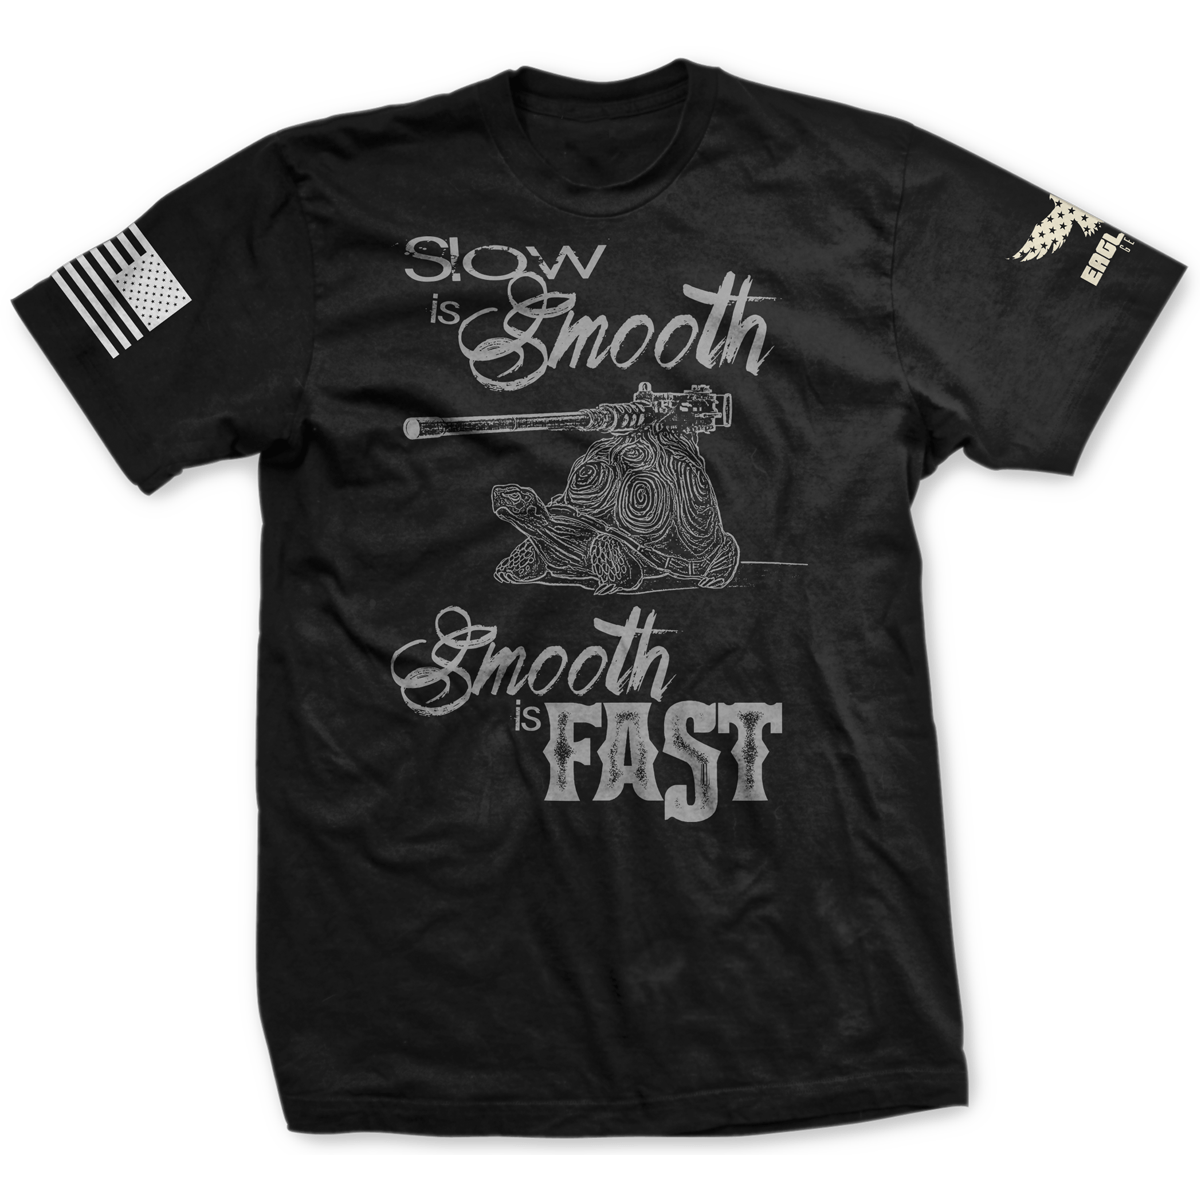 Slow Is Smooth Tee